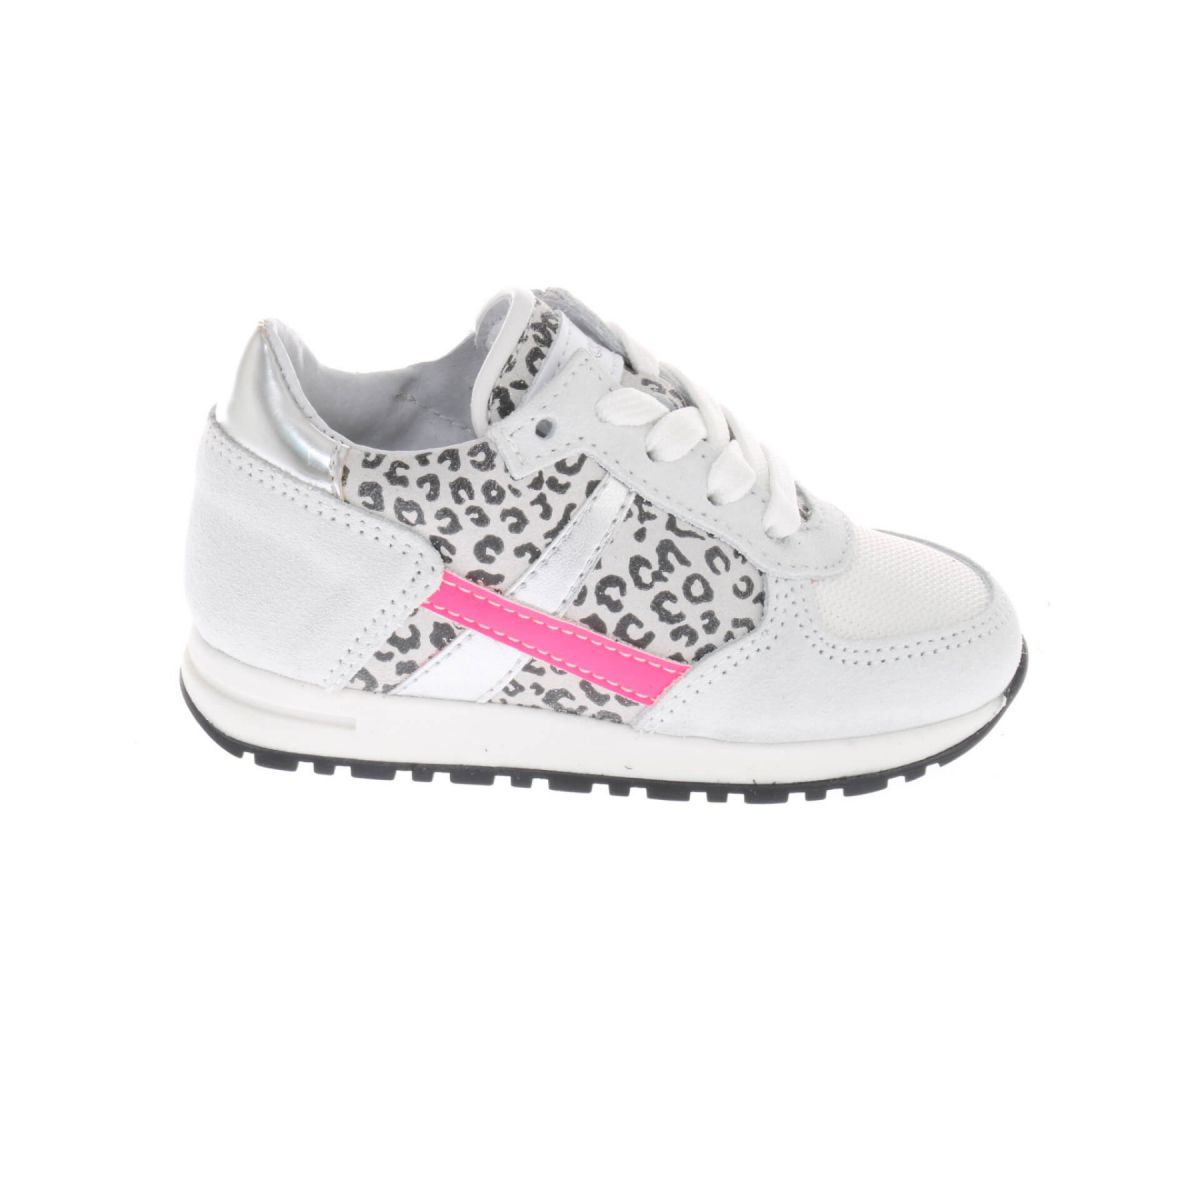 Pinocchio P1841 Sneakers Wit Panter Roze